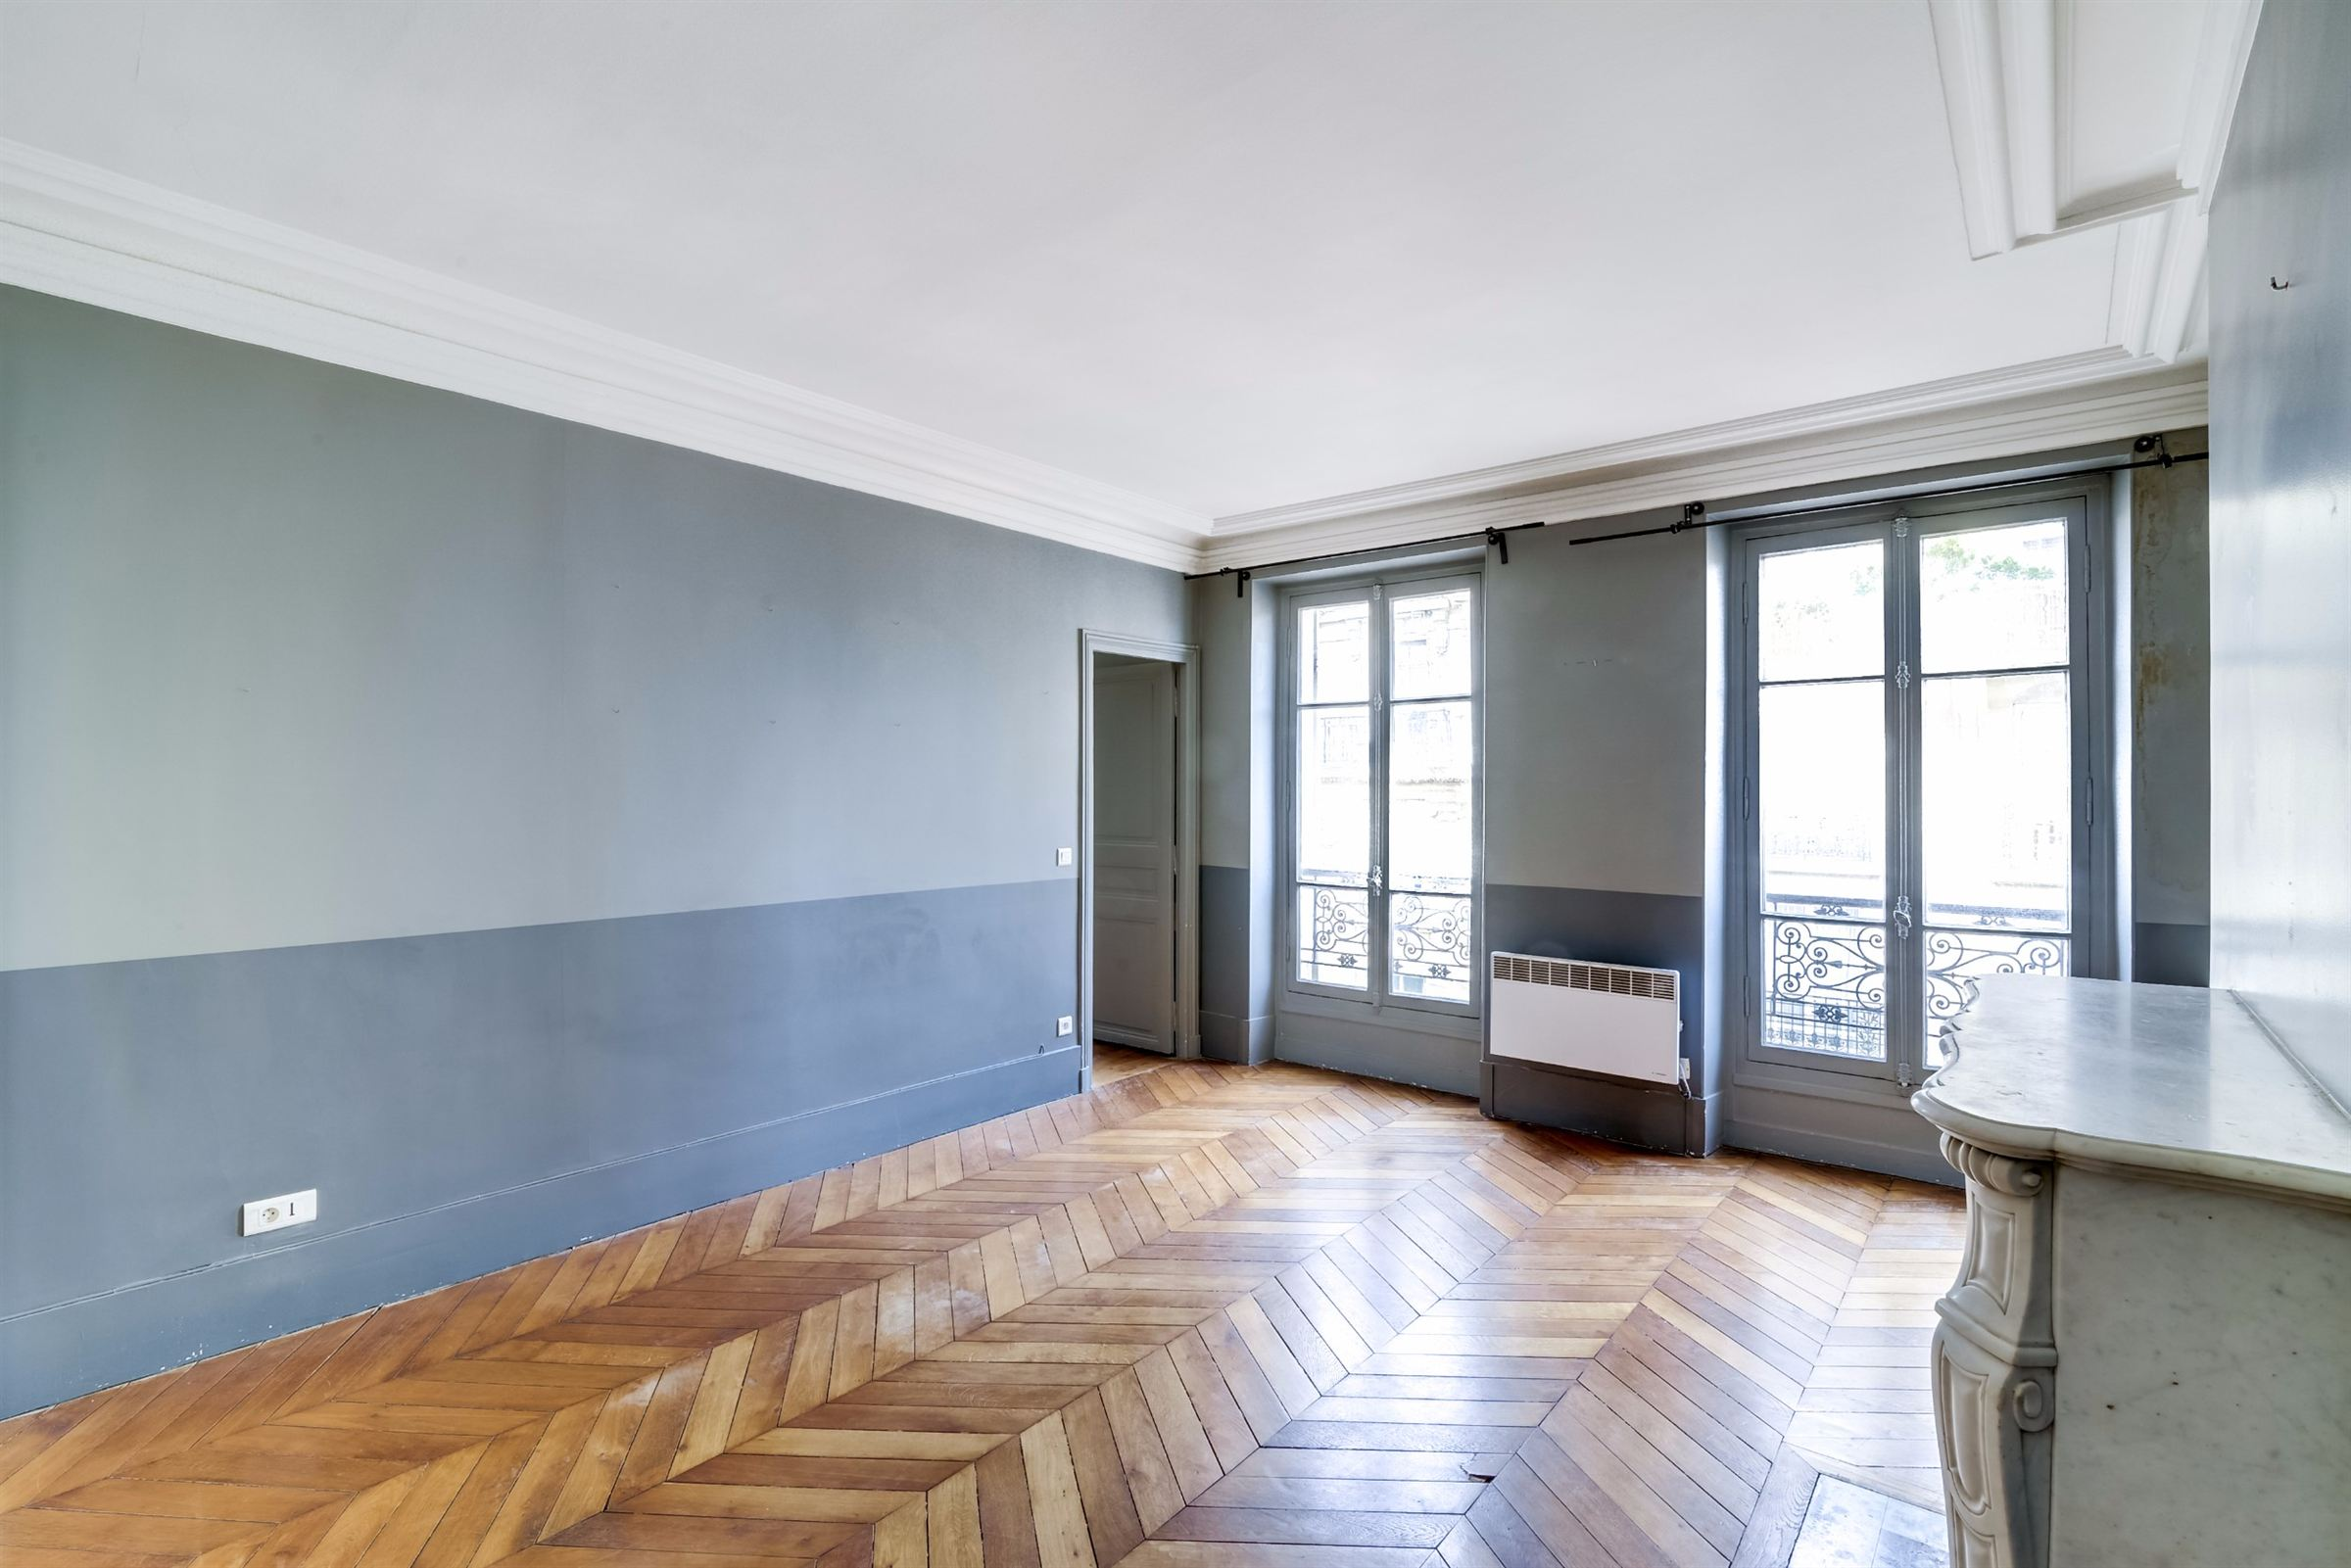 sales property at Lovely 3-room apartment for sale in Neuilly-sur-Seine - ChezyPerronet